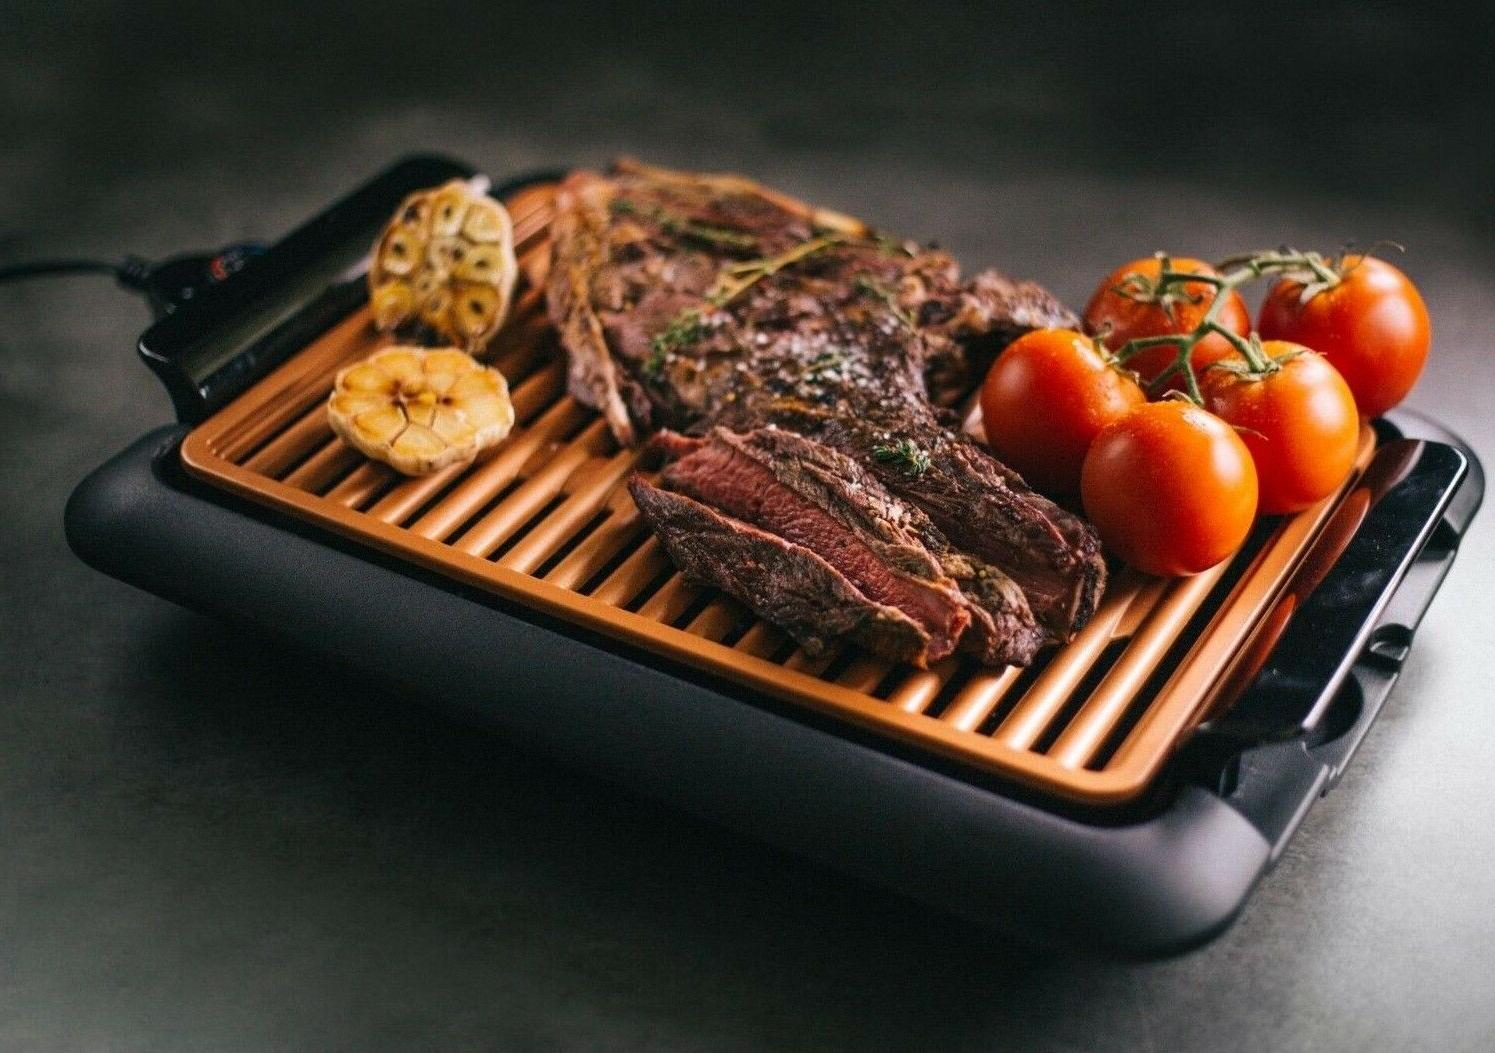 Gotham Smokeless Electric Indoor Grill Portable -As Seen TV